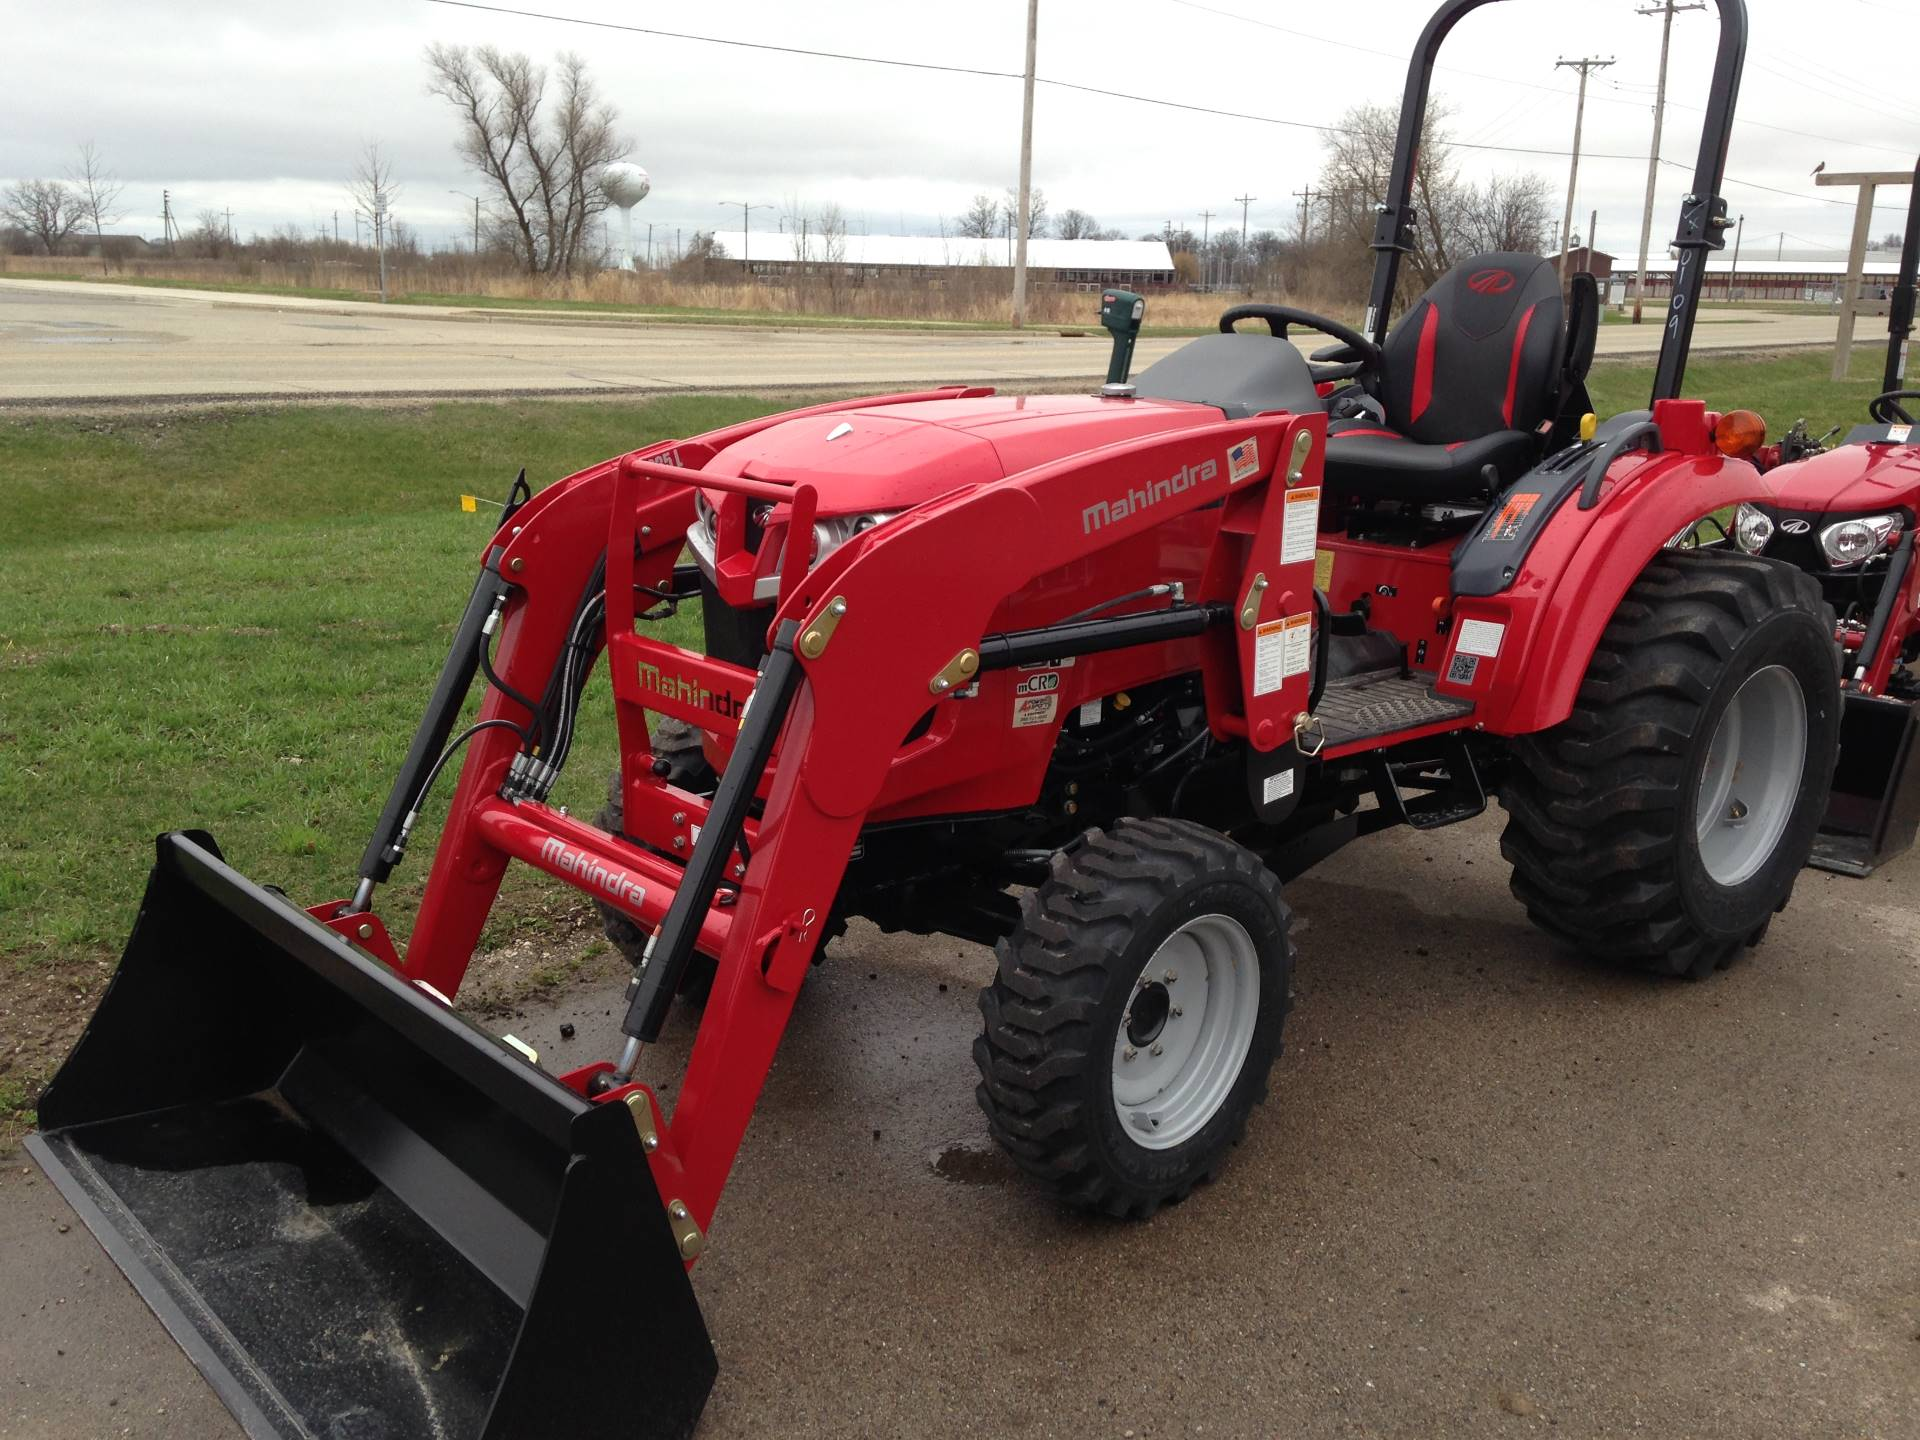 2019 Mahindra 1635FHIL in Elkhorn, Wisconsin - Photo 1